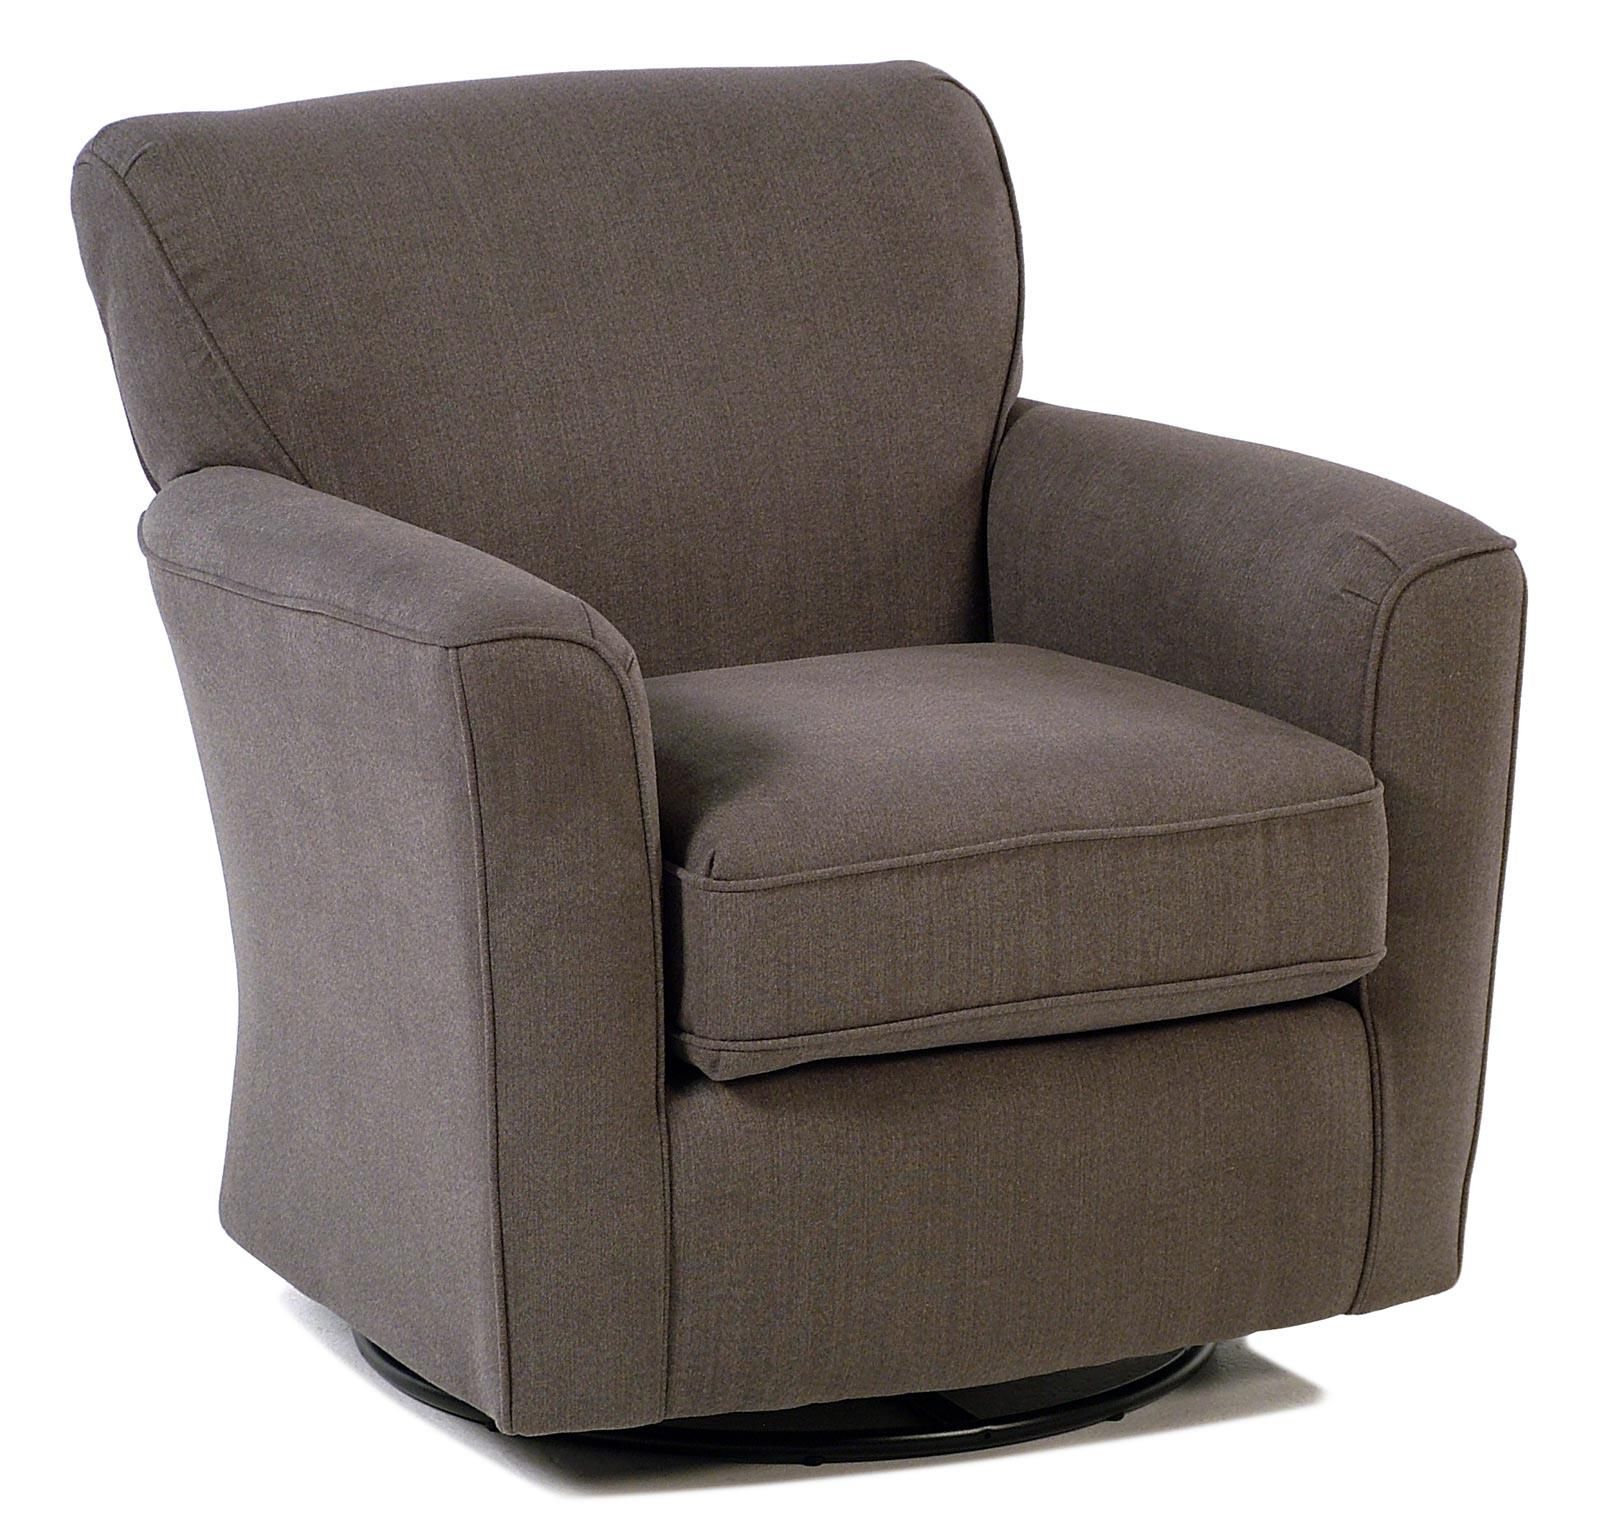 Best Home Furnishings Chairs - Swivel Glide Swivel Barrel Arm Chair - Item Number: 2887